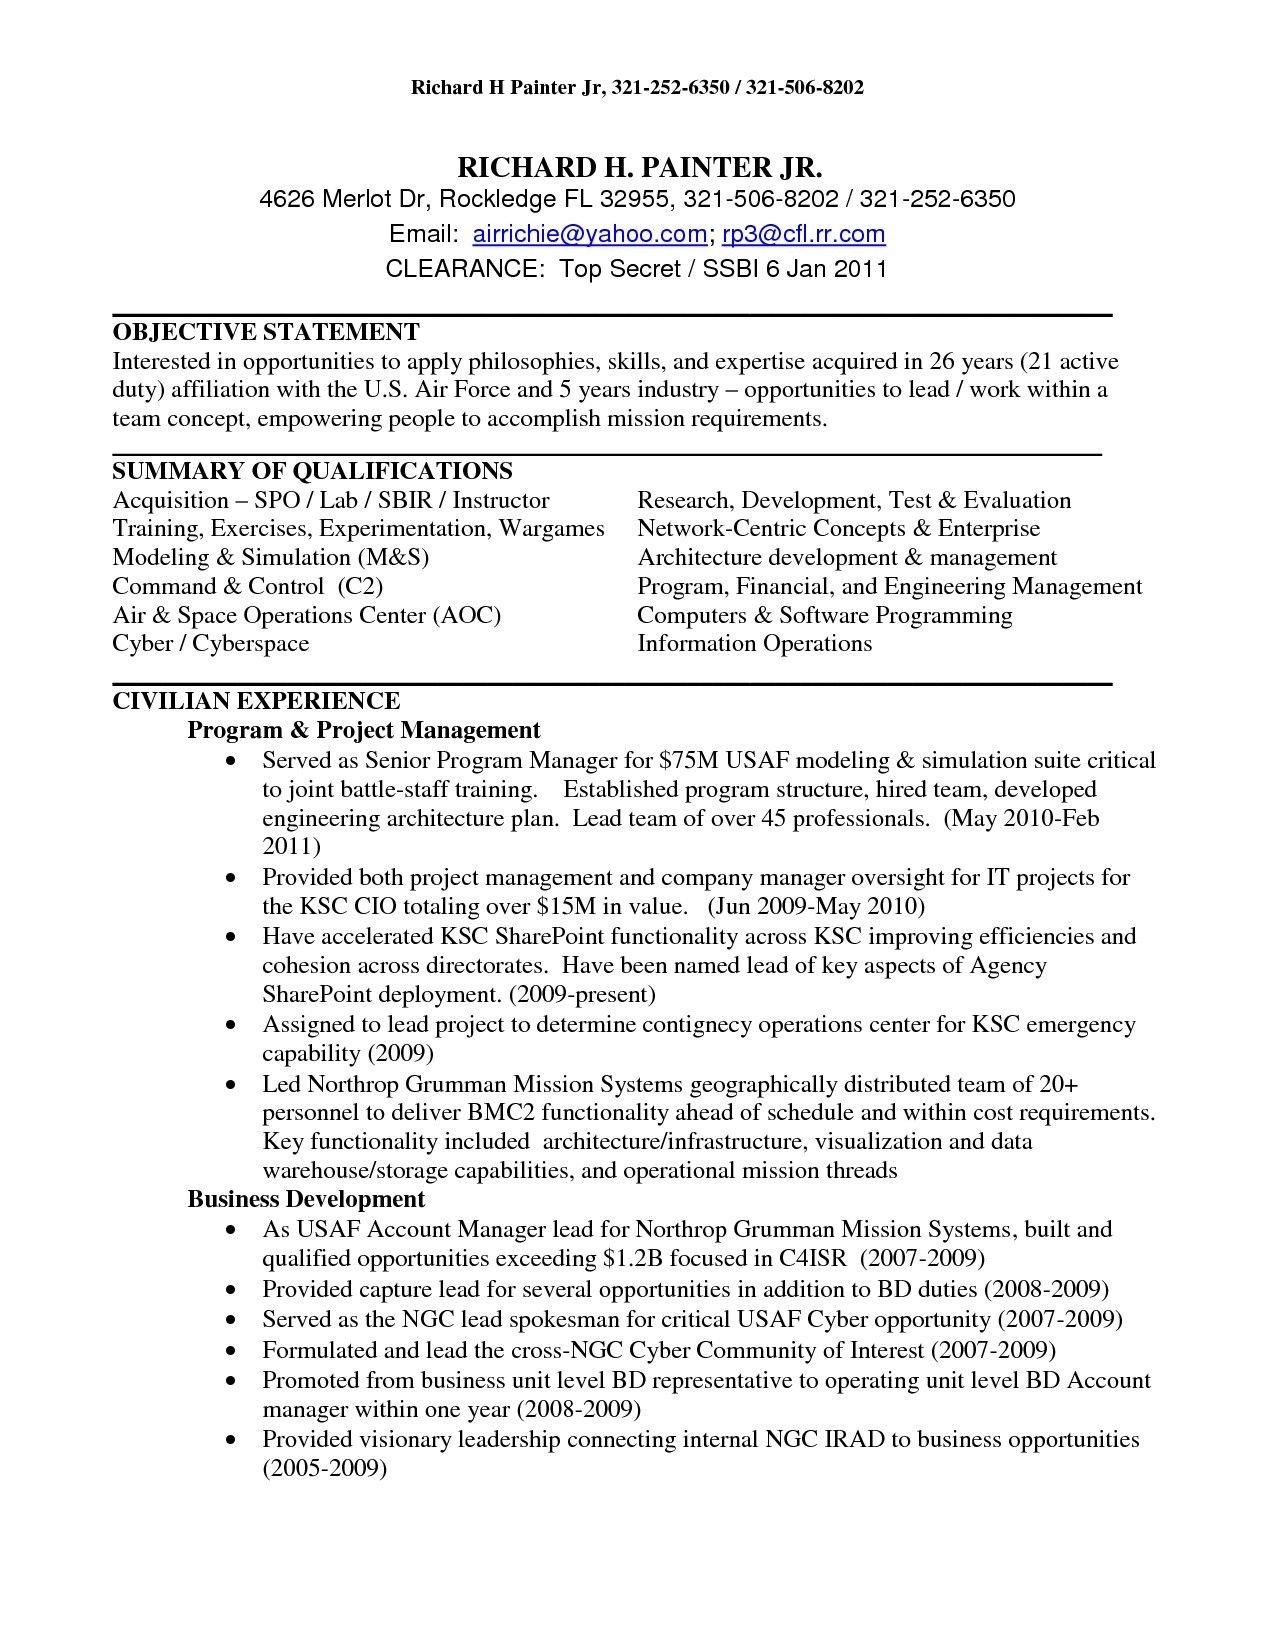 handyman resume template example-Sample Management Resume 24 Sample Management Resume 9-h